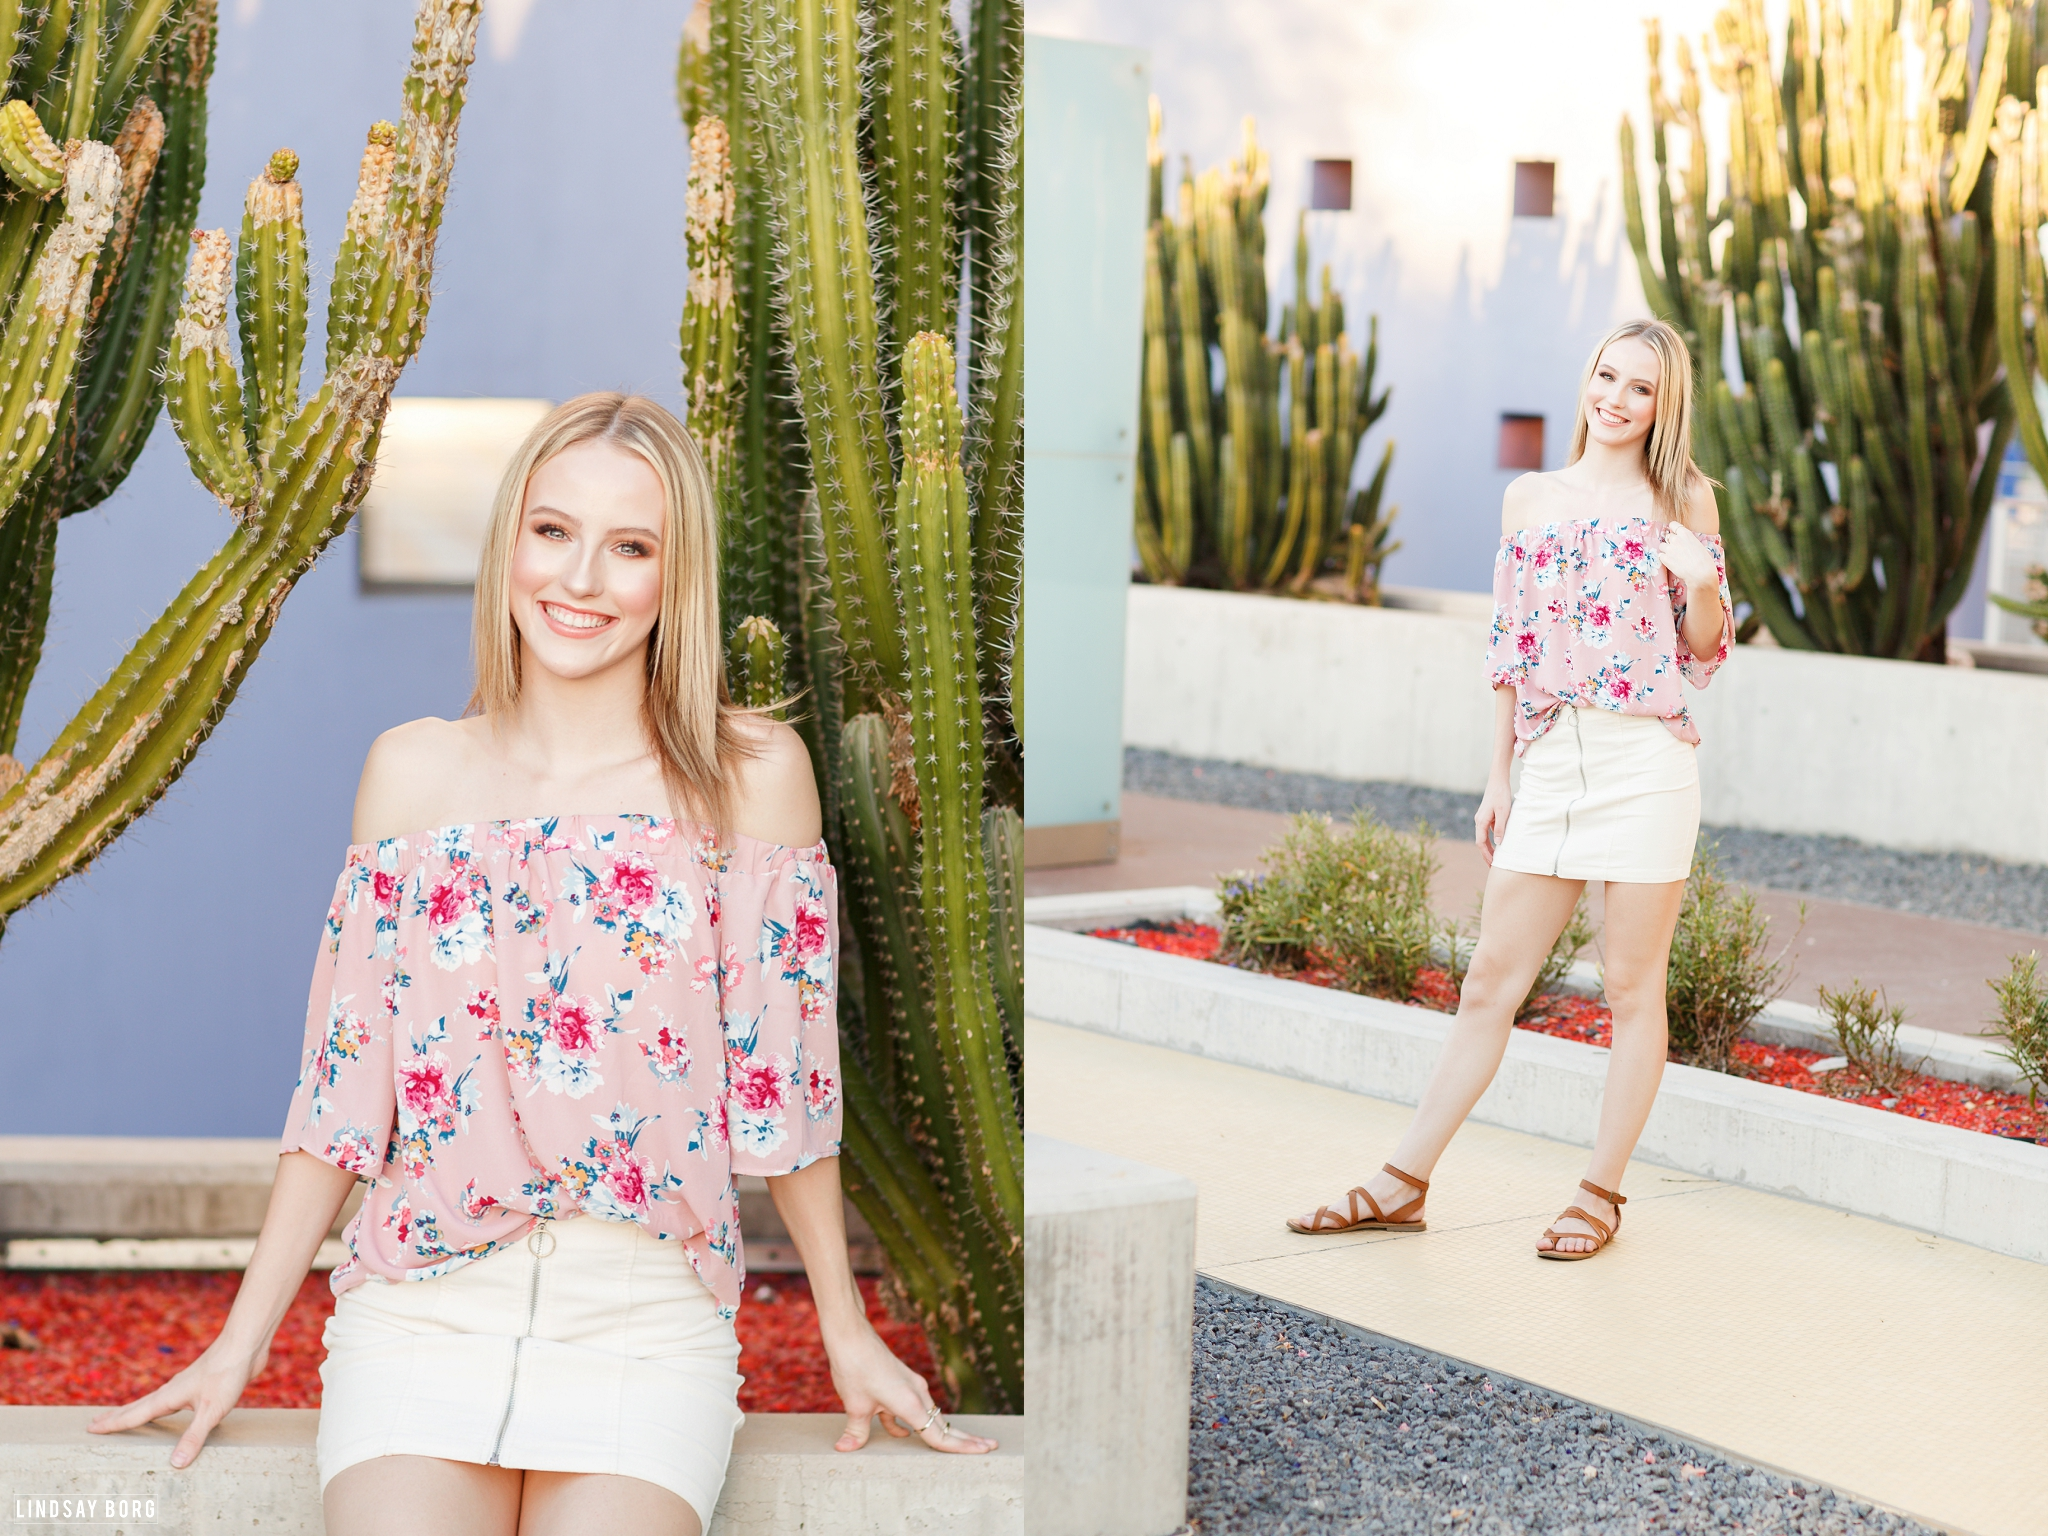 Lindsay-Borg-Arizona-Senior-Portraits (35).jpg